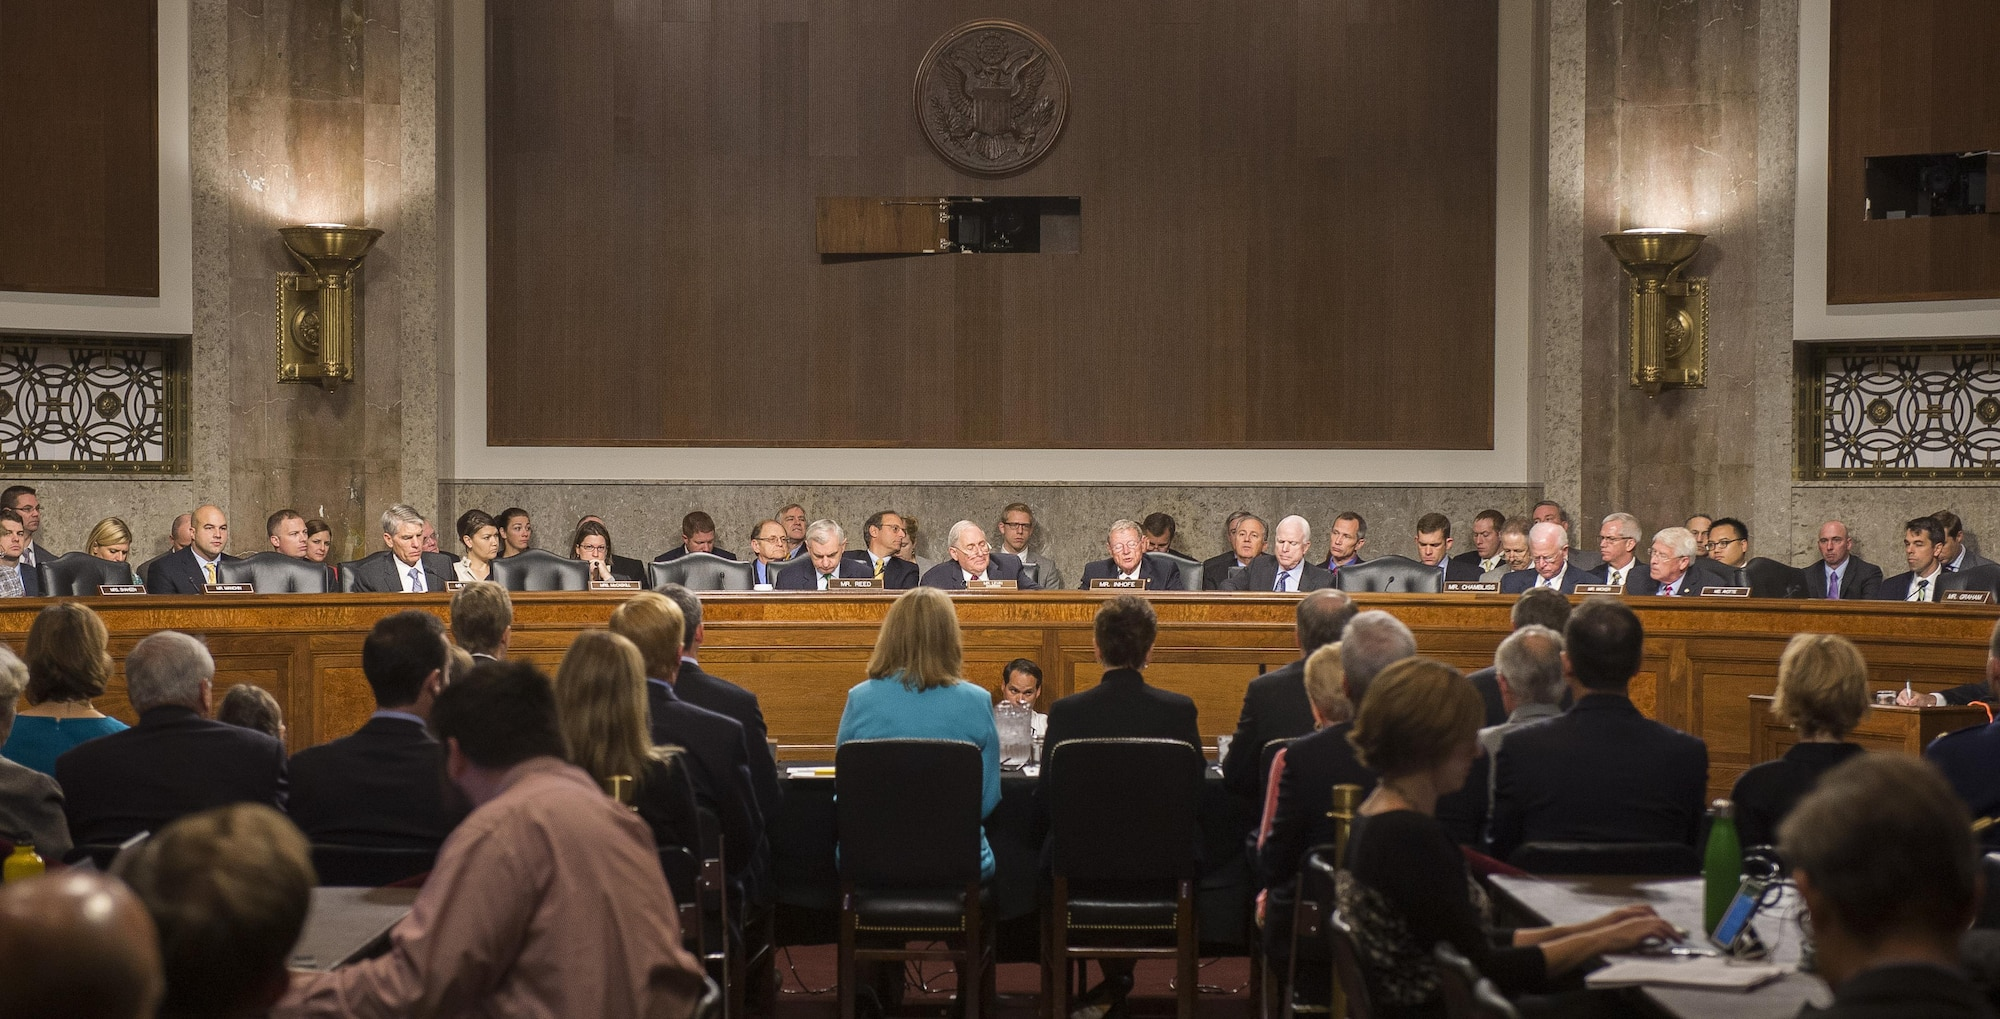 Ms. Deborah Lee James (foreground center) listens to a question from Ranking Member of the Senate Armed Services Committee James Inhofe Sept. 19, 2013, in Washington, D.C. The committee convened to consider her nomination by President Barack Obama to be the 23rd sSecretary of the Air Force. If confirmed, James would be the second female secretary in the Air Force's history. The first was Shelia Widnall, who served as secretary from 1993 to 1997.  Besides James four other nominees were being considered for jobs throughout the Department of Defense.